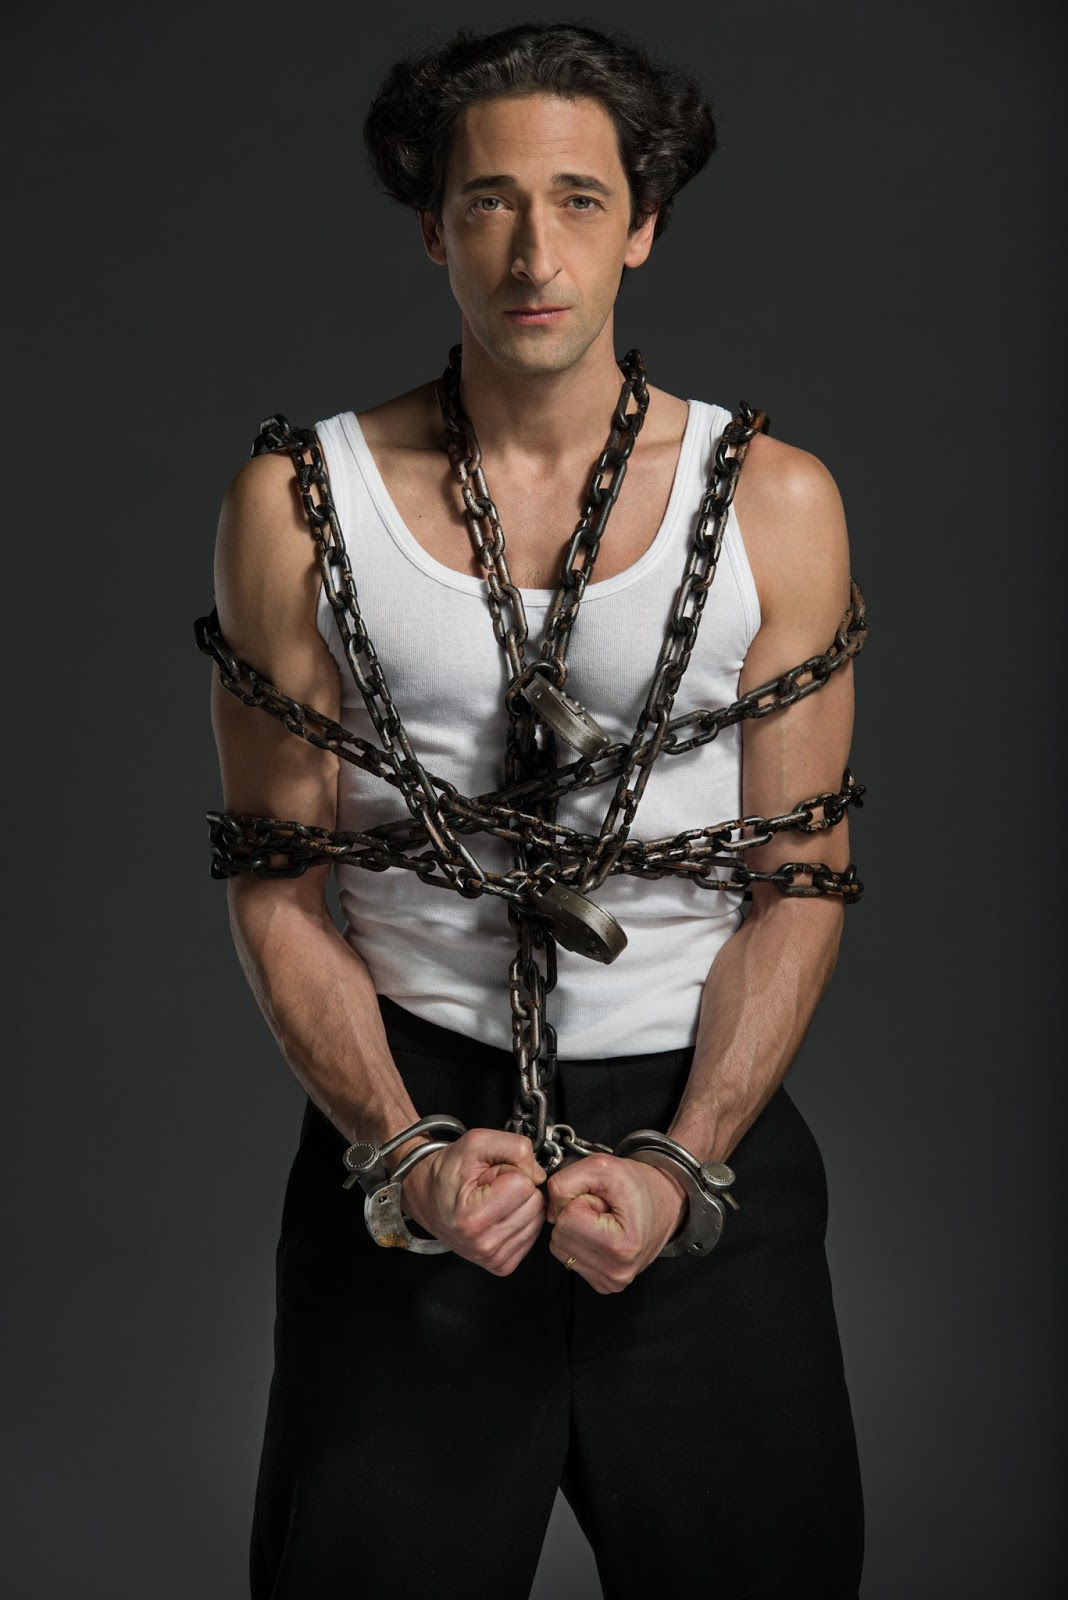 Academy Award winner Adrien Brody (The Pianist) stars as The Great Harry Houdini